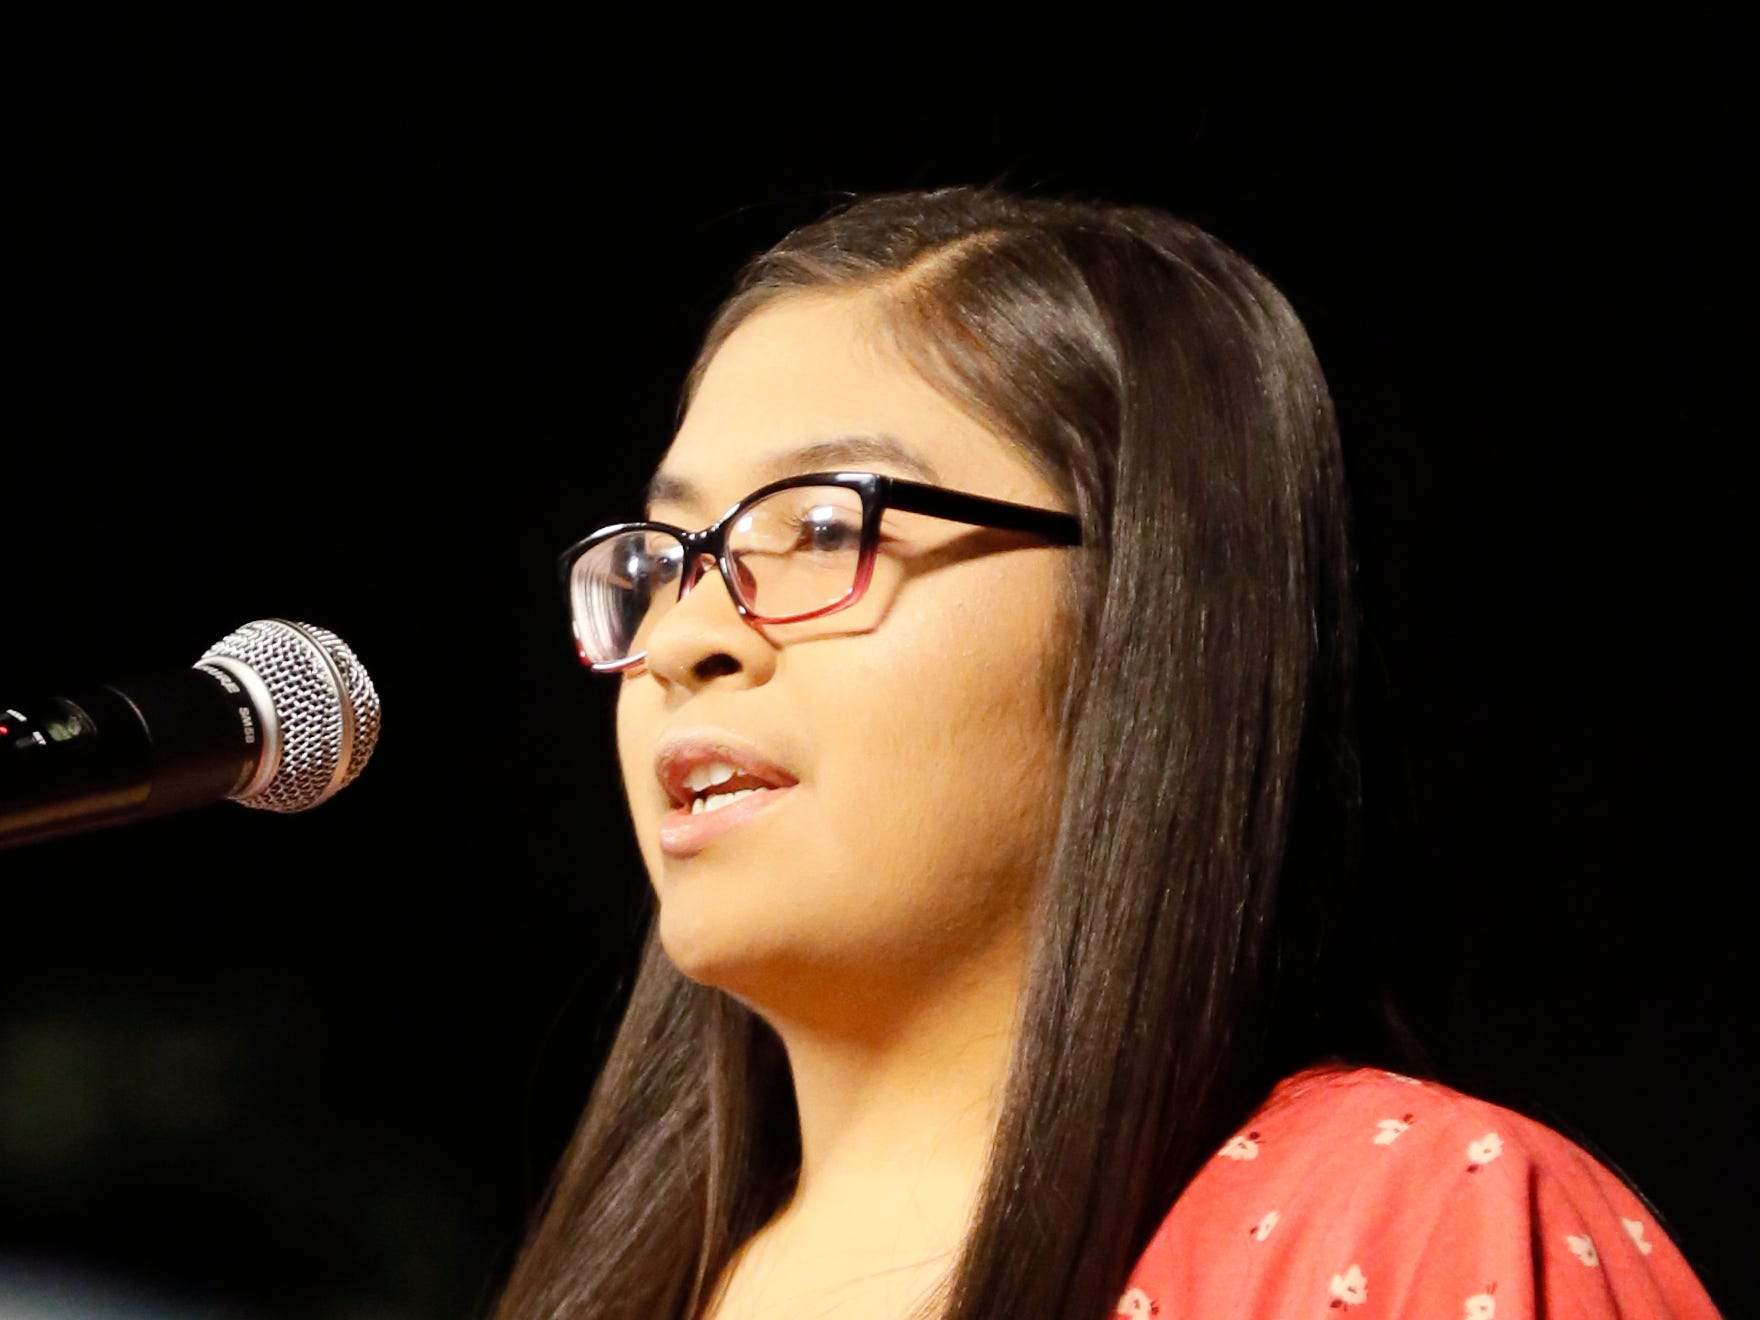 Mission Early College High School student Mia Chan gives a speech to her class Tuesday, May 7, at stoling ceremony at EPCC Administrative Service Center in El Paso.